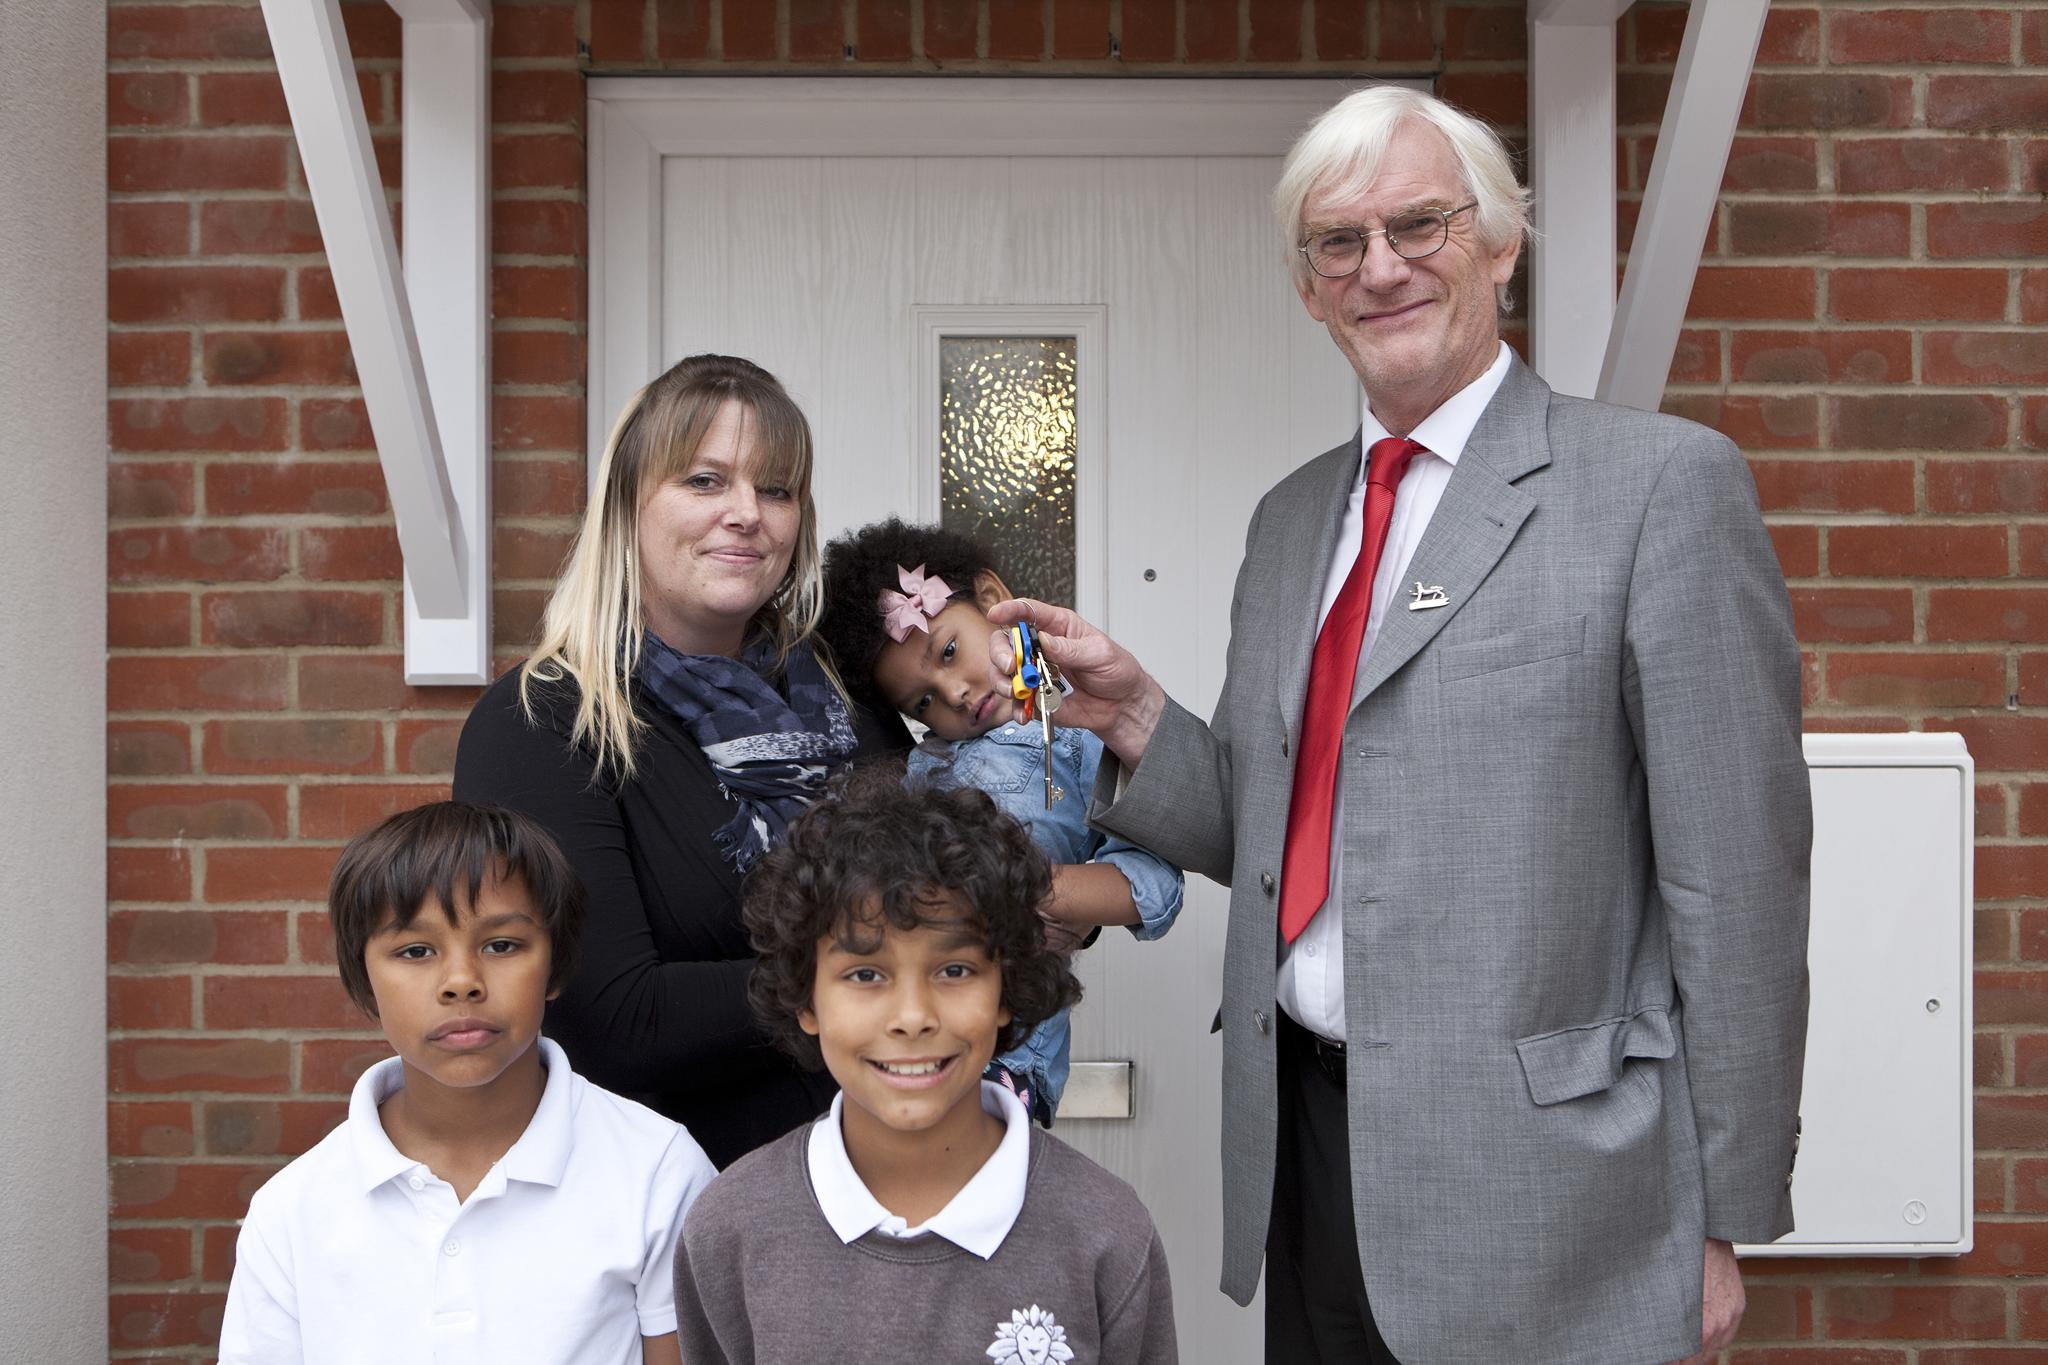 Cllr Waters hands over keys to new council house to delighted family.